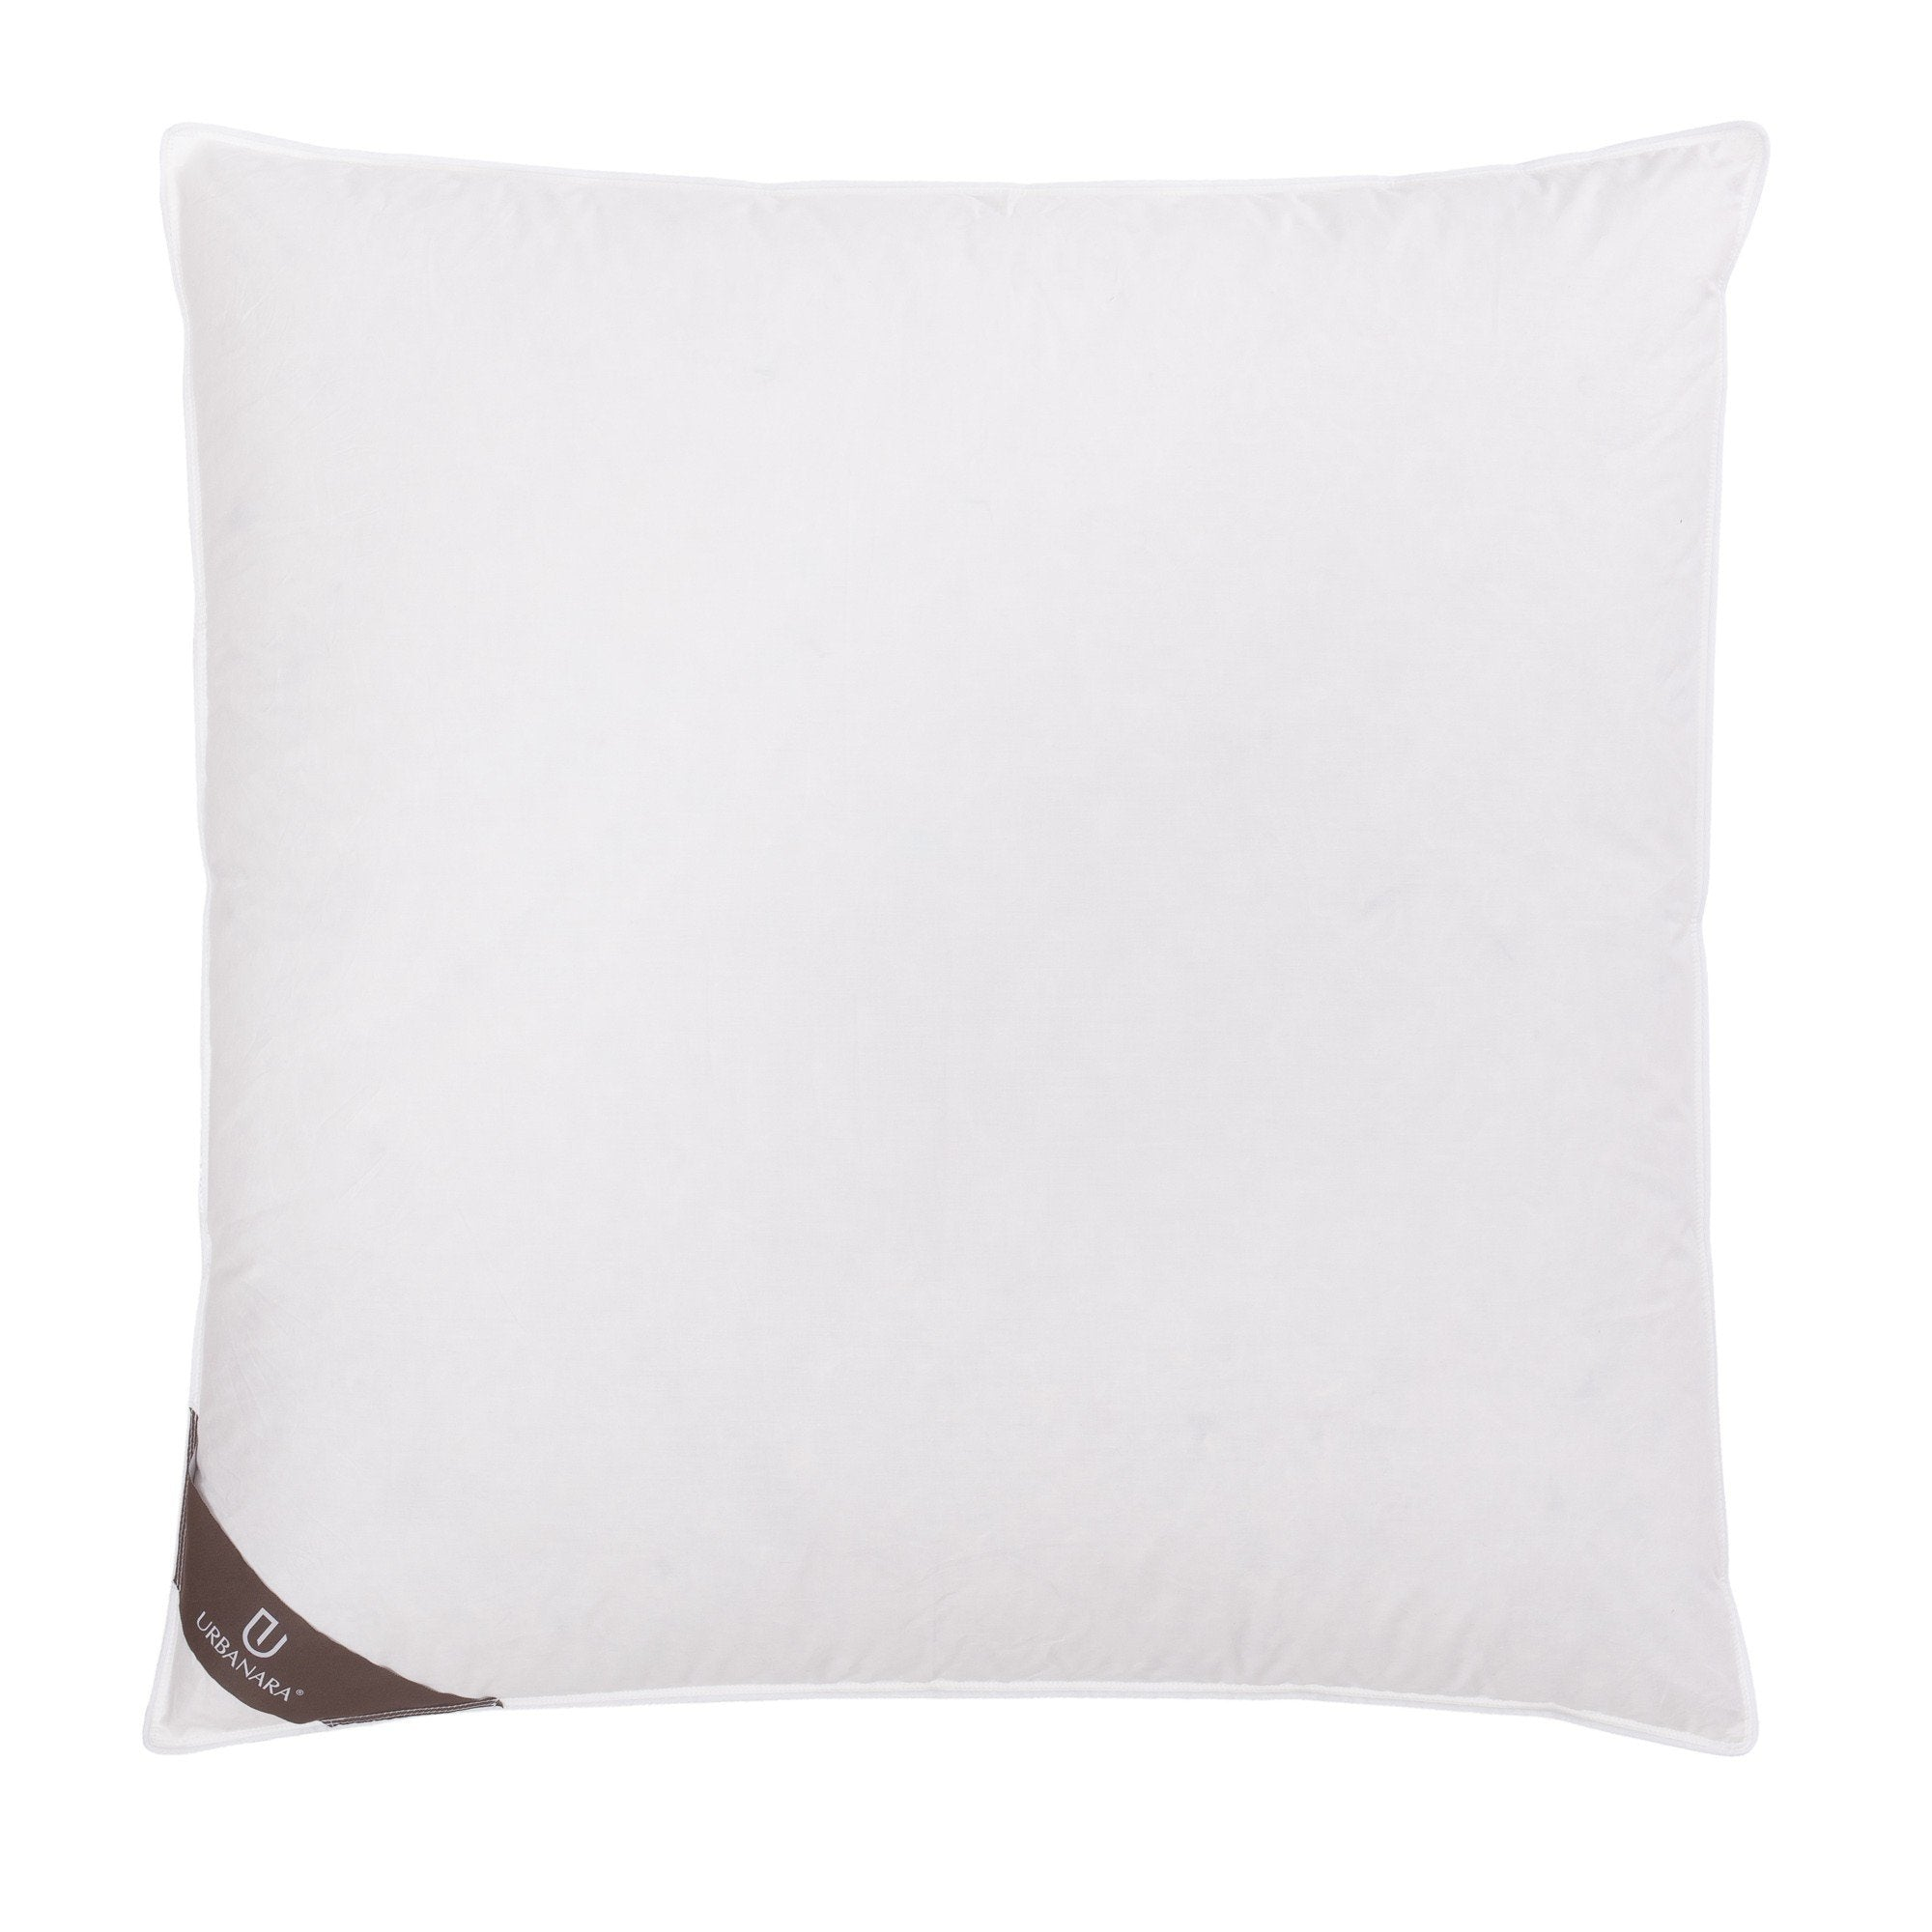 Varde pillow, white, 60% duck down & 40% duck feathers